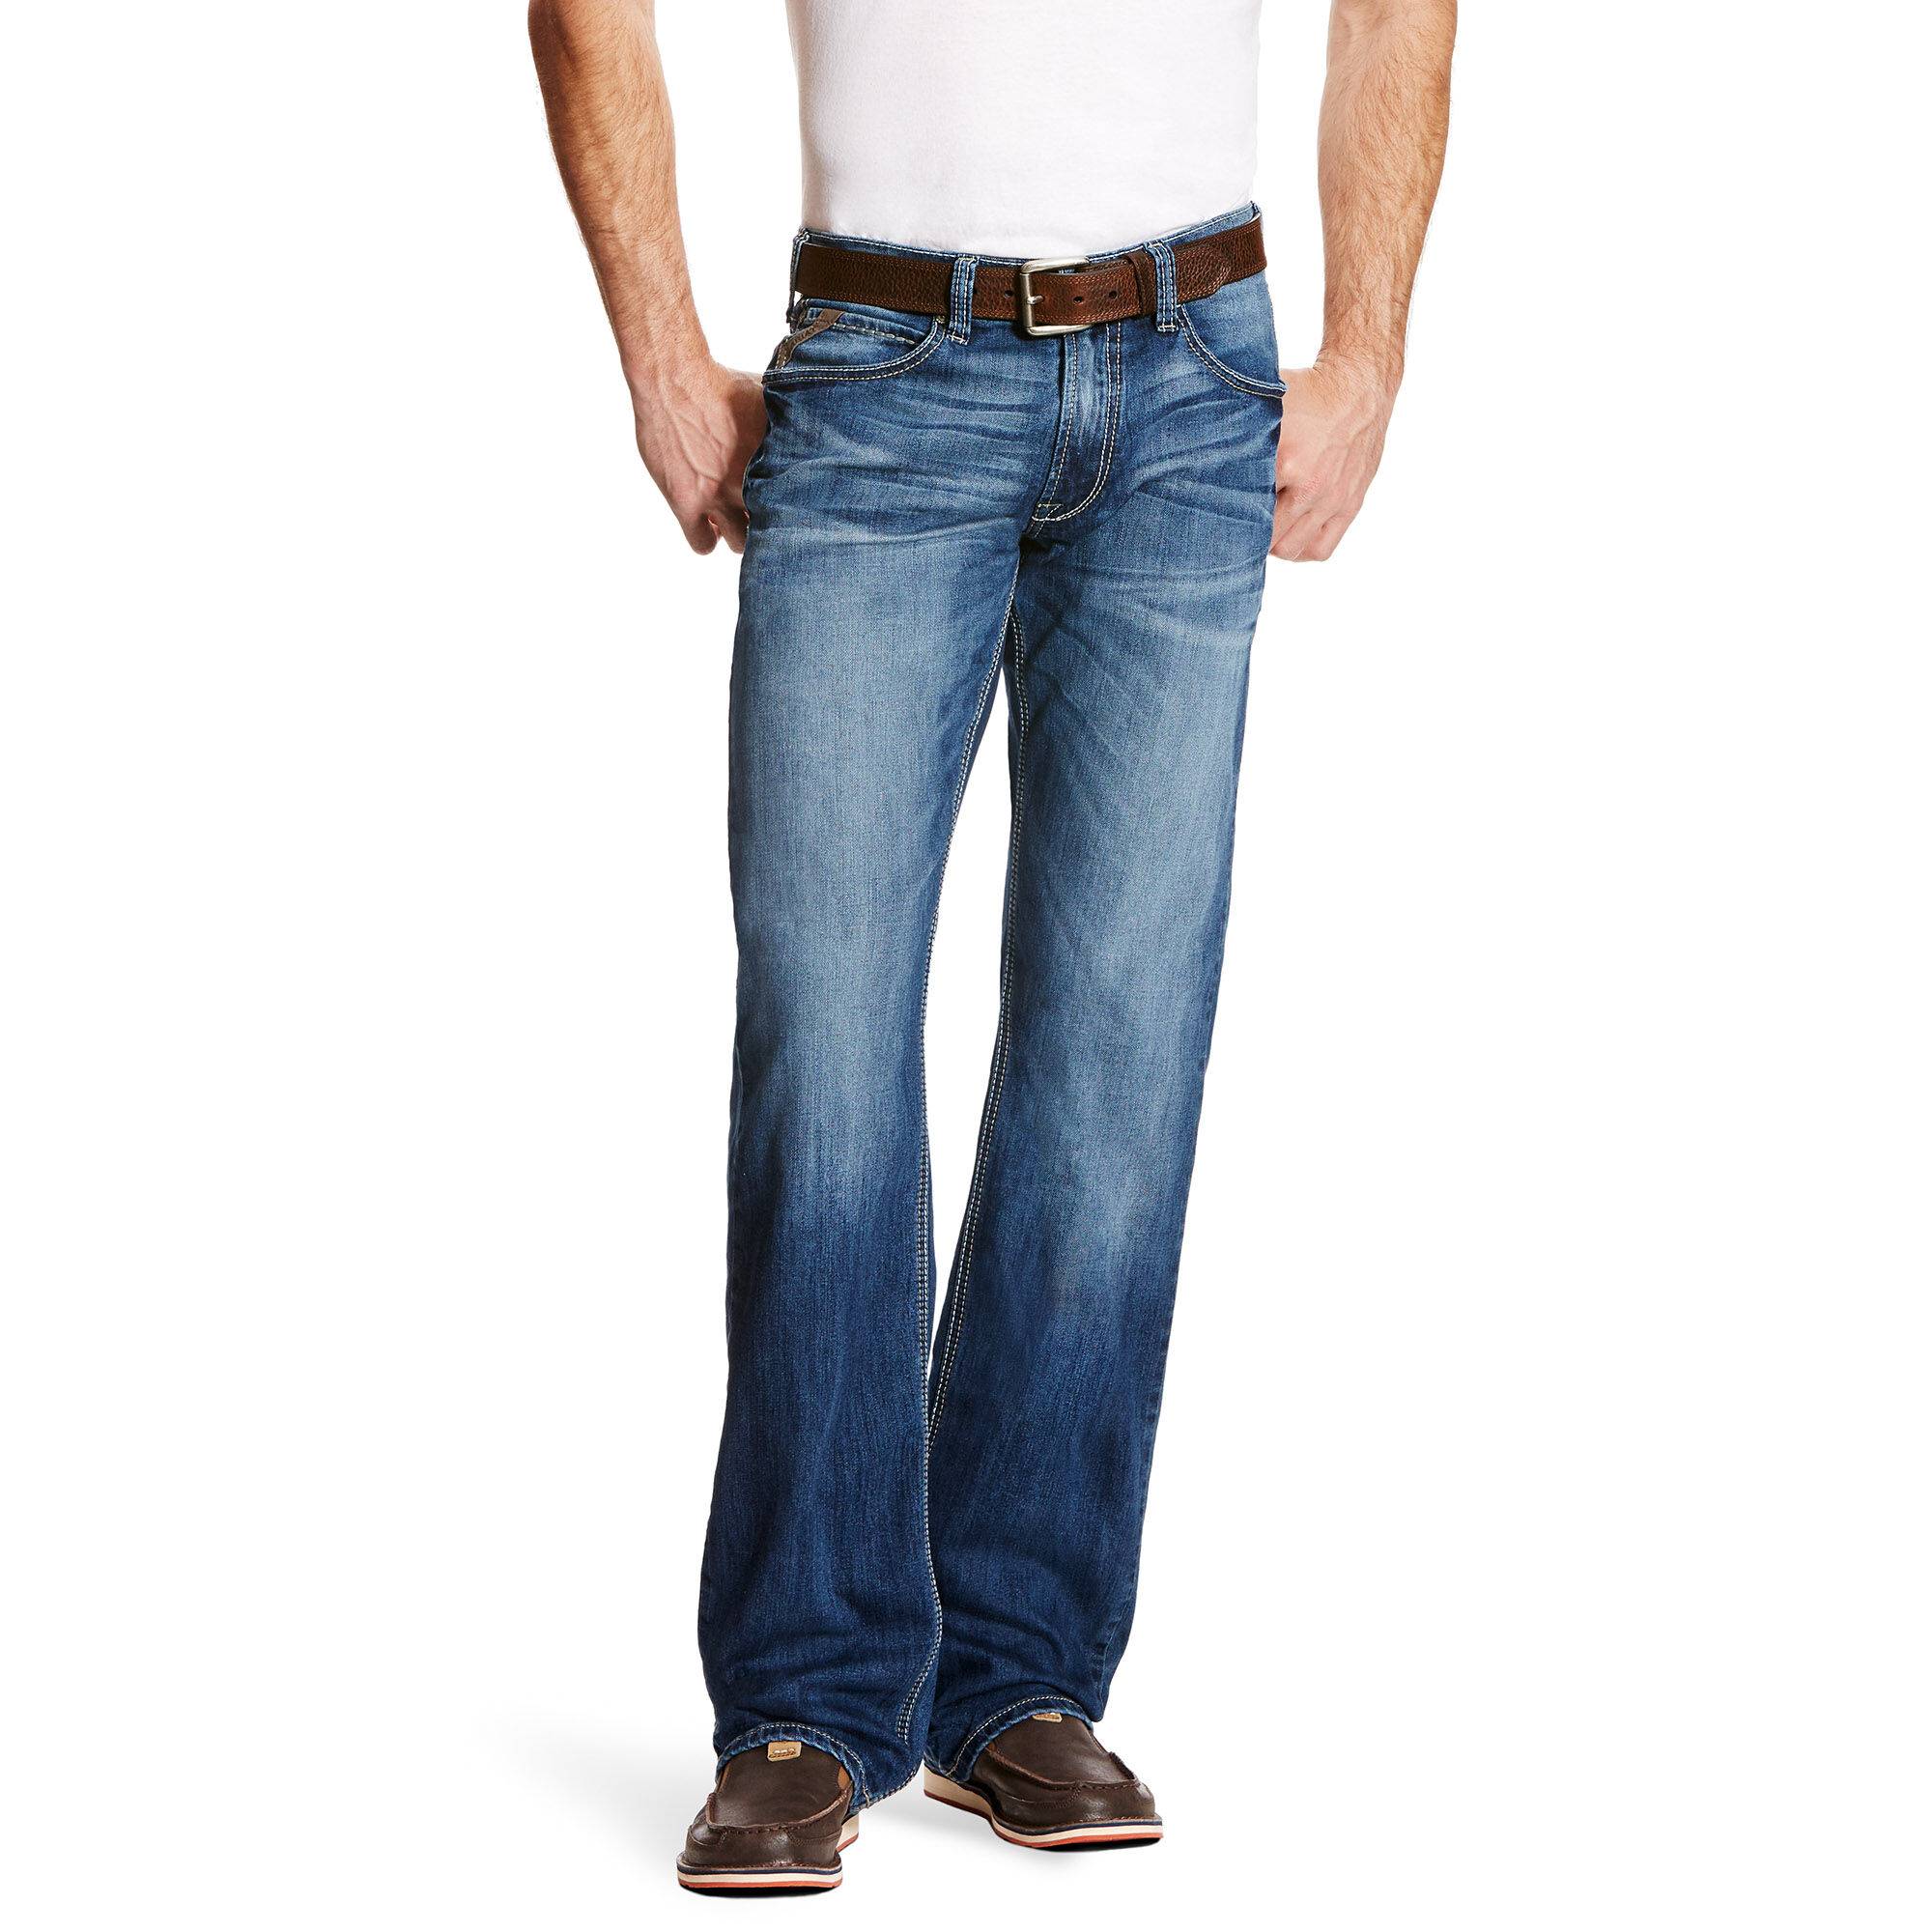 a5e30d90 Images. M5 Slim Incline Cooling Stretch Stackable Straight Leg Jean